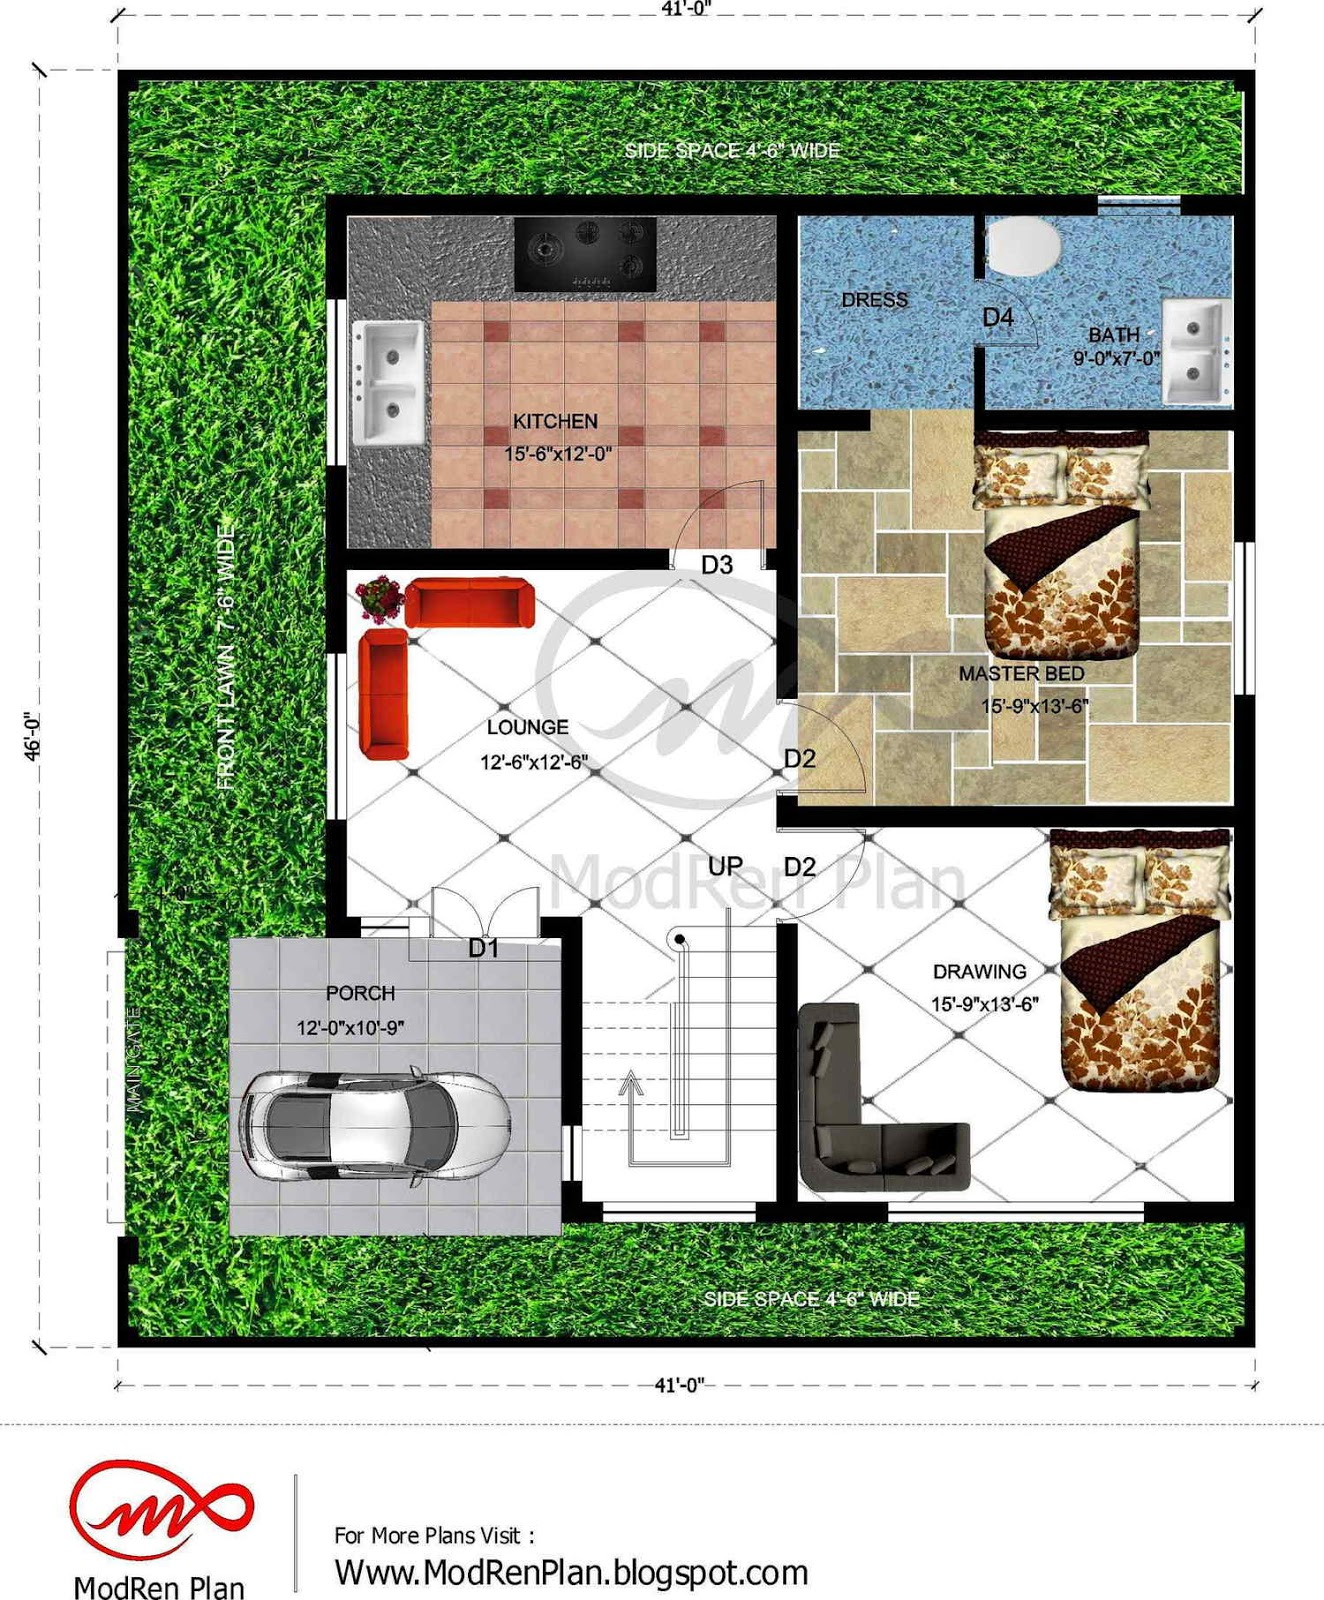 7 marla house plan 1800 sq ft 46x41 feet for 1800 sq ft house plans